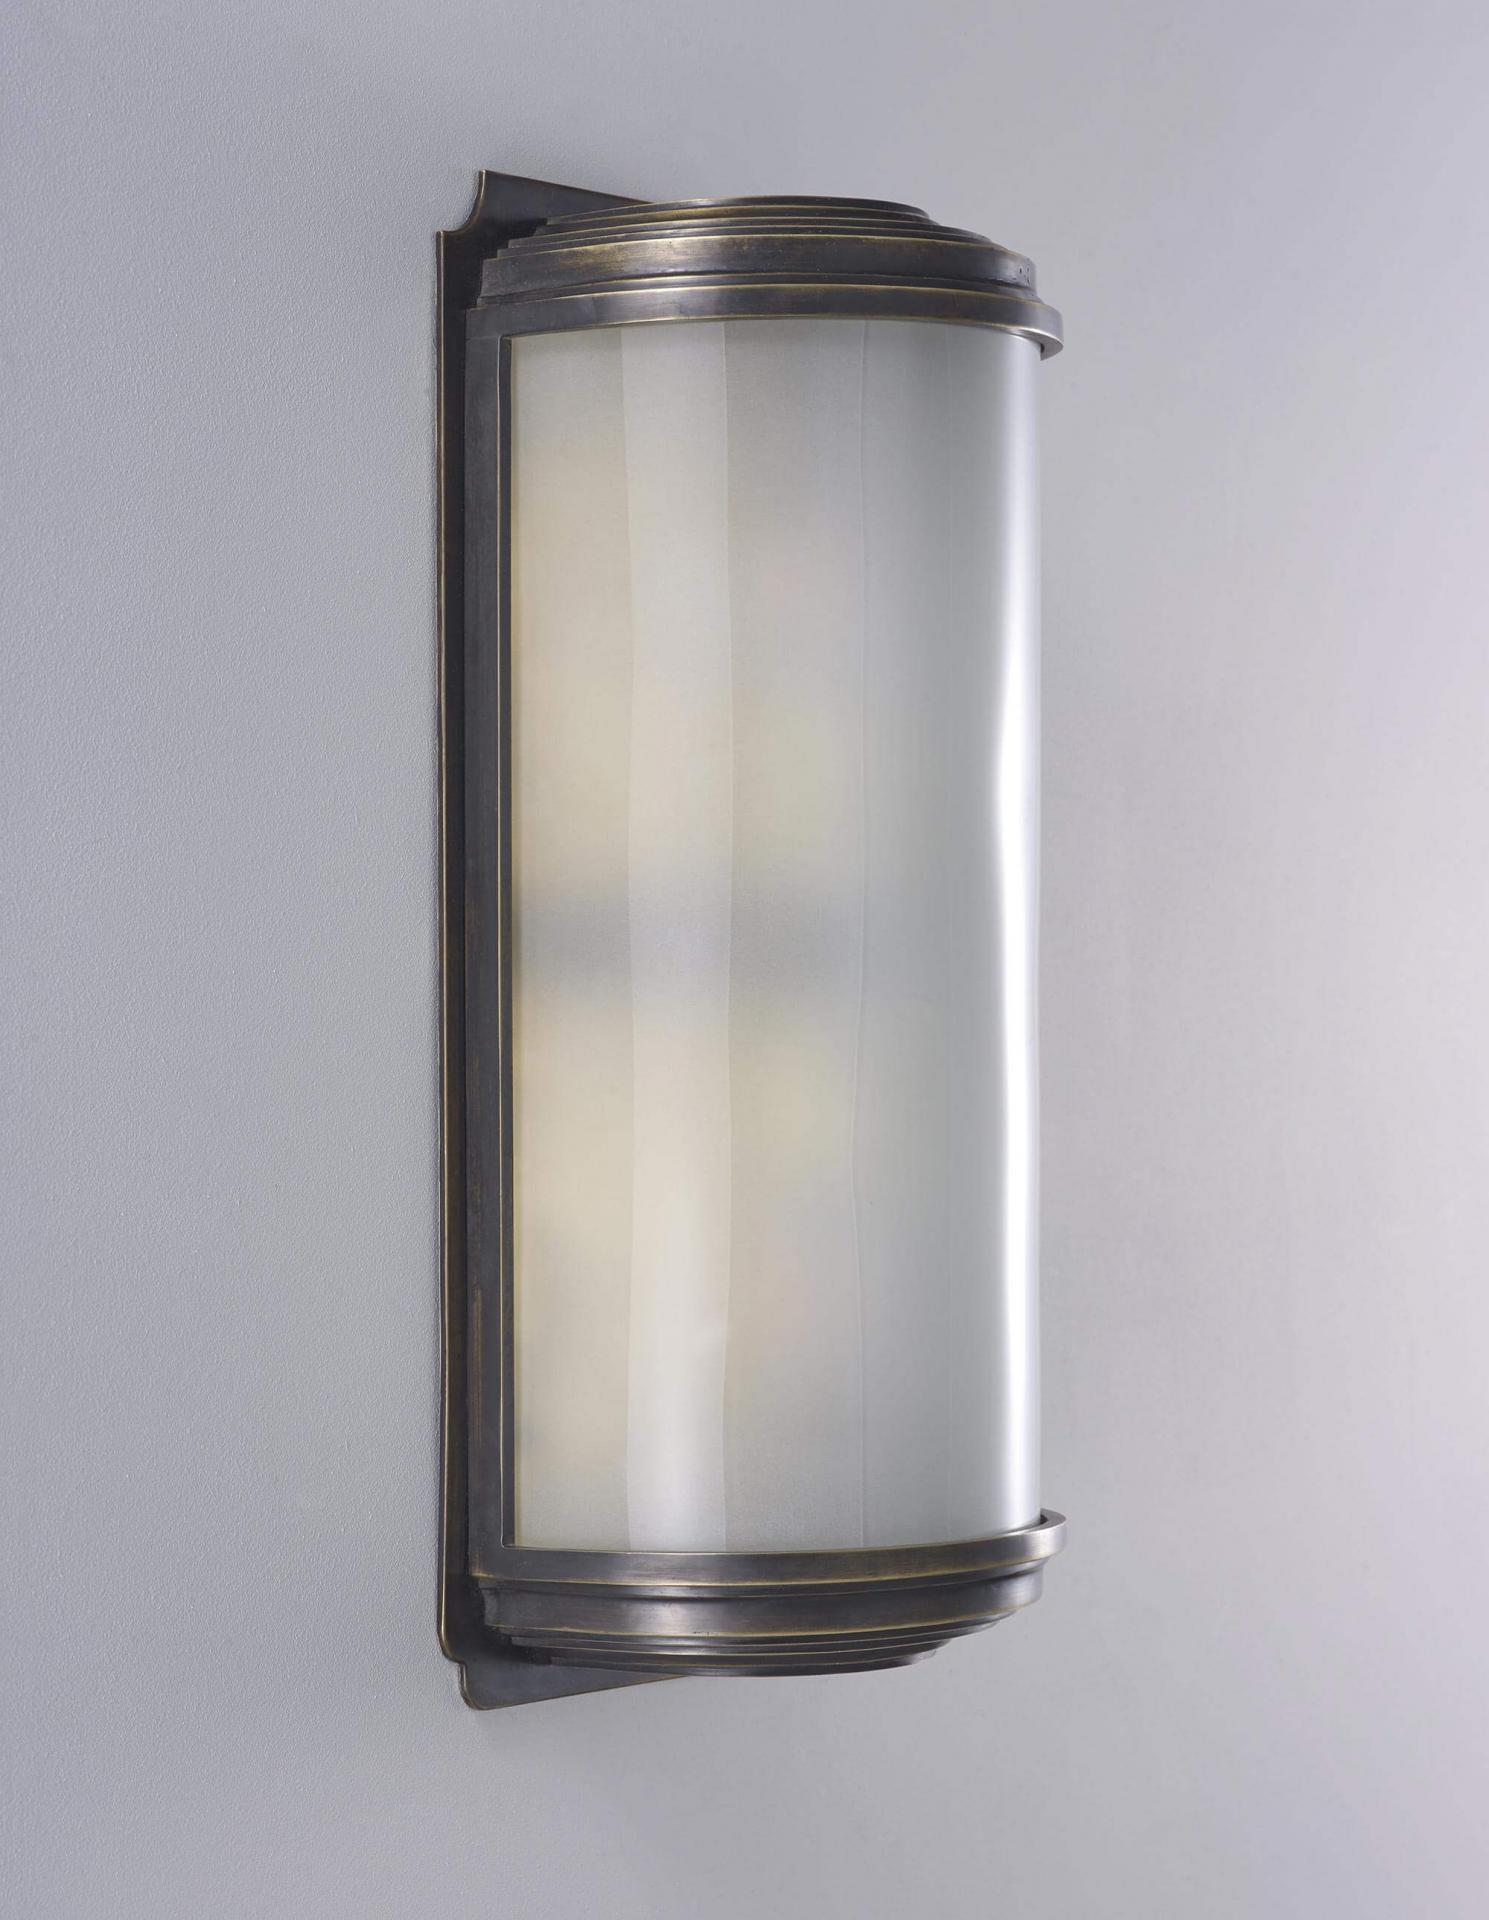 Cylinder wall light by Collier Webb - a brass and glass sconce ideal for an entrance hall